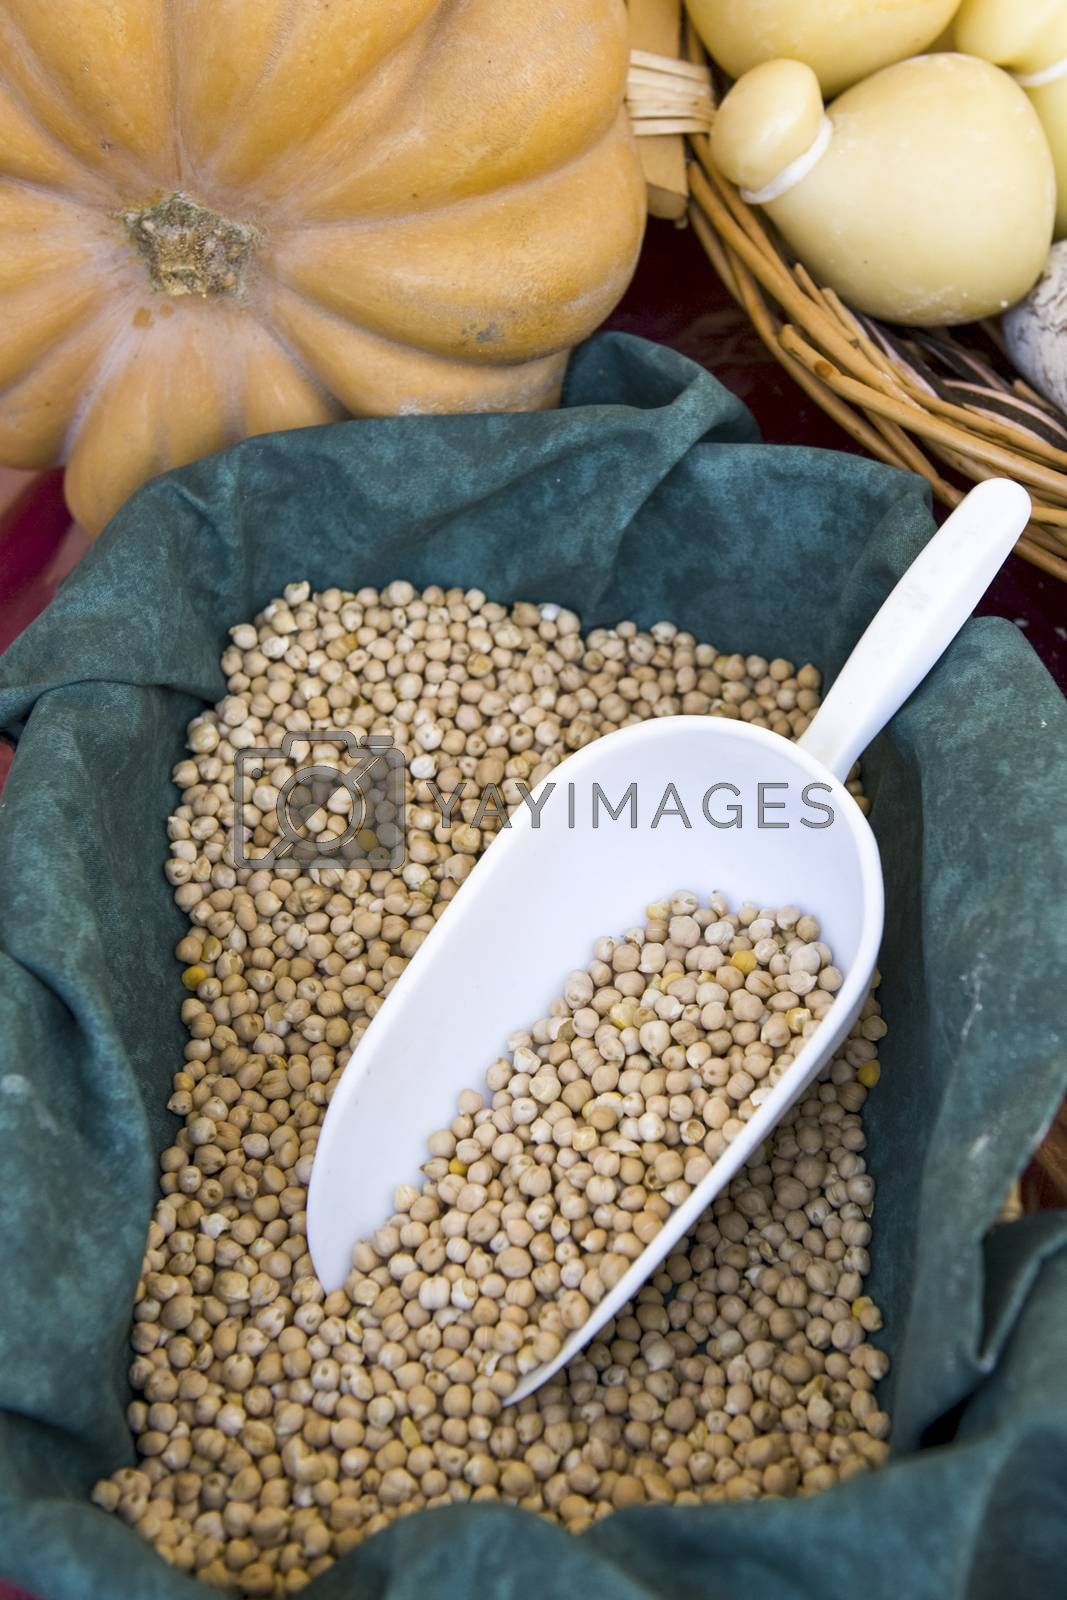 Royalty free image of chickpeas by missdragonfly